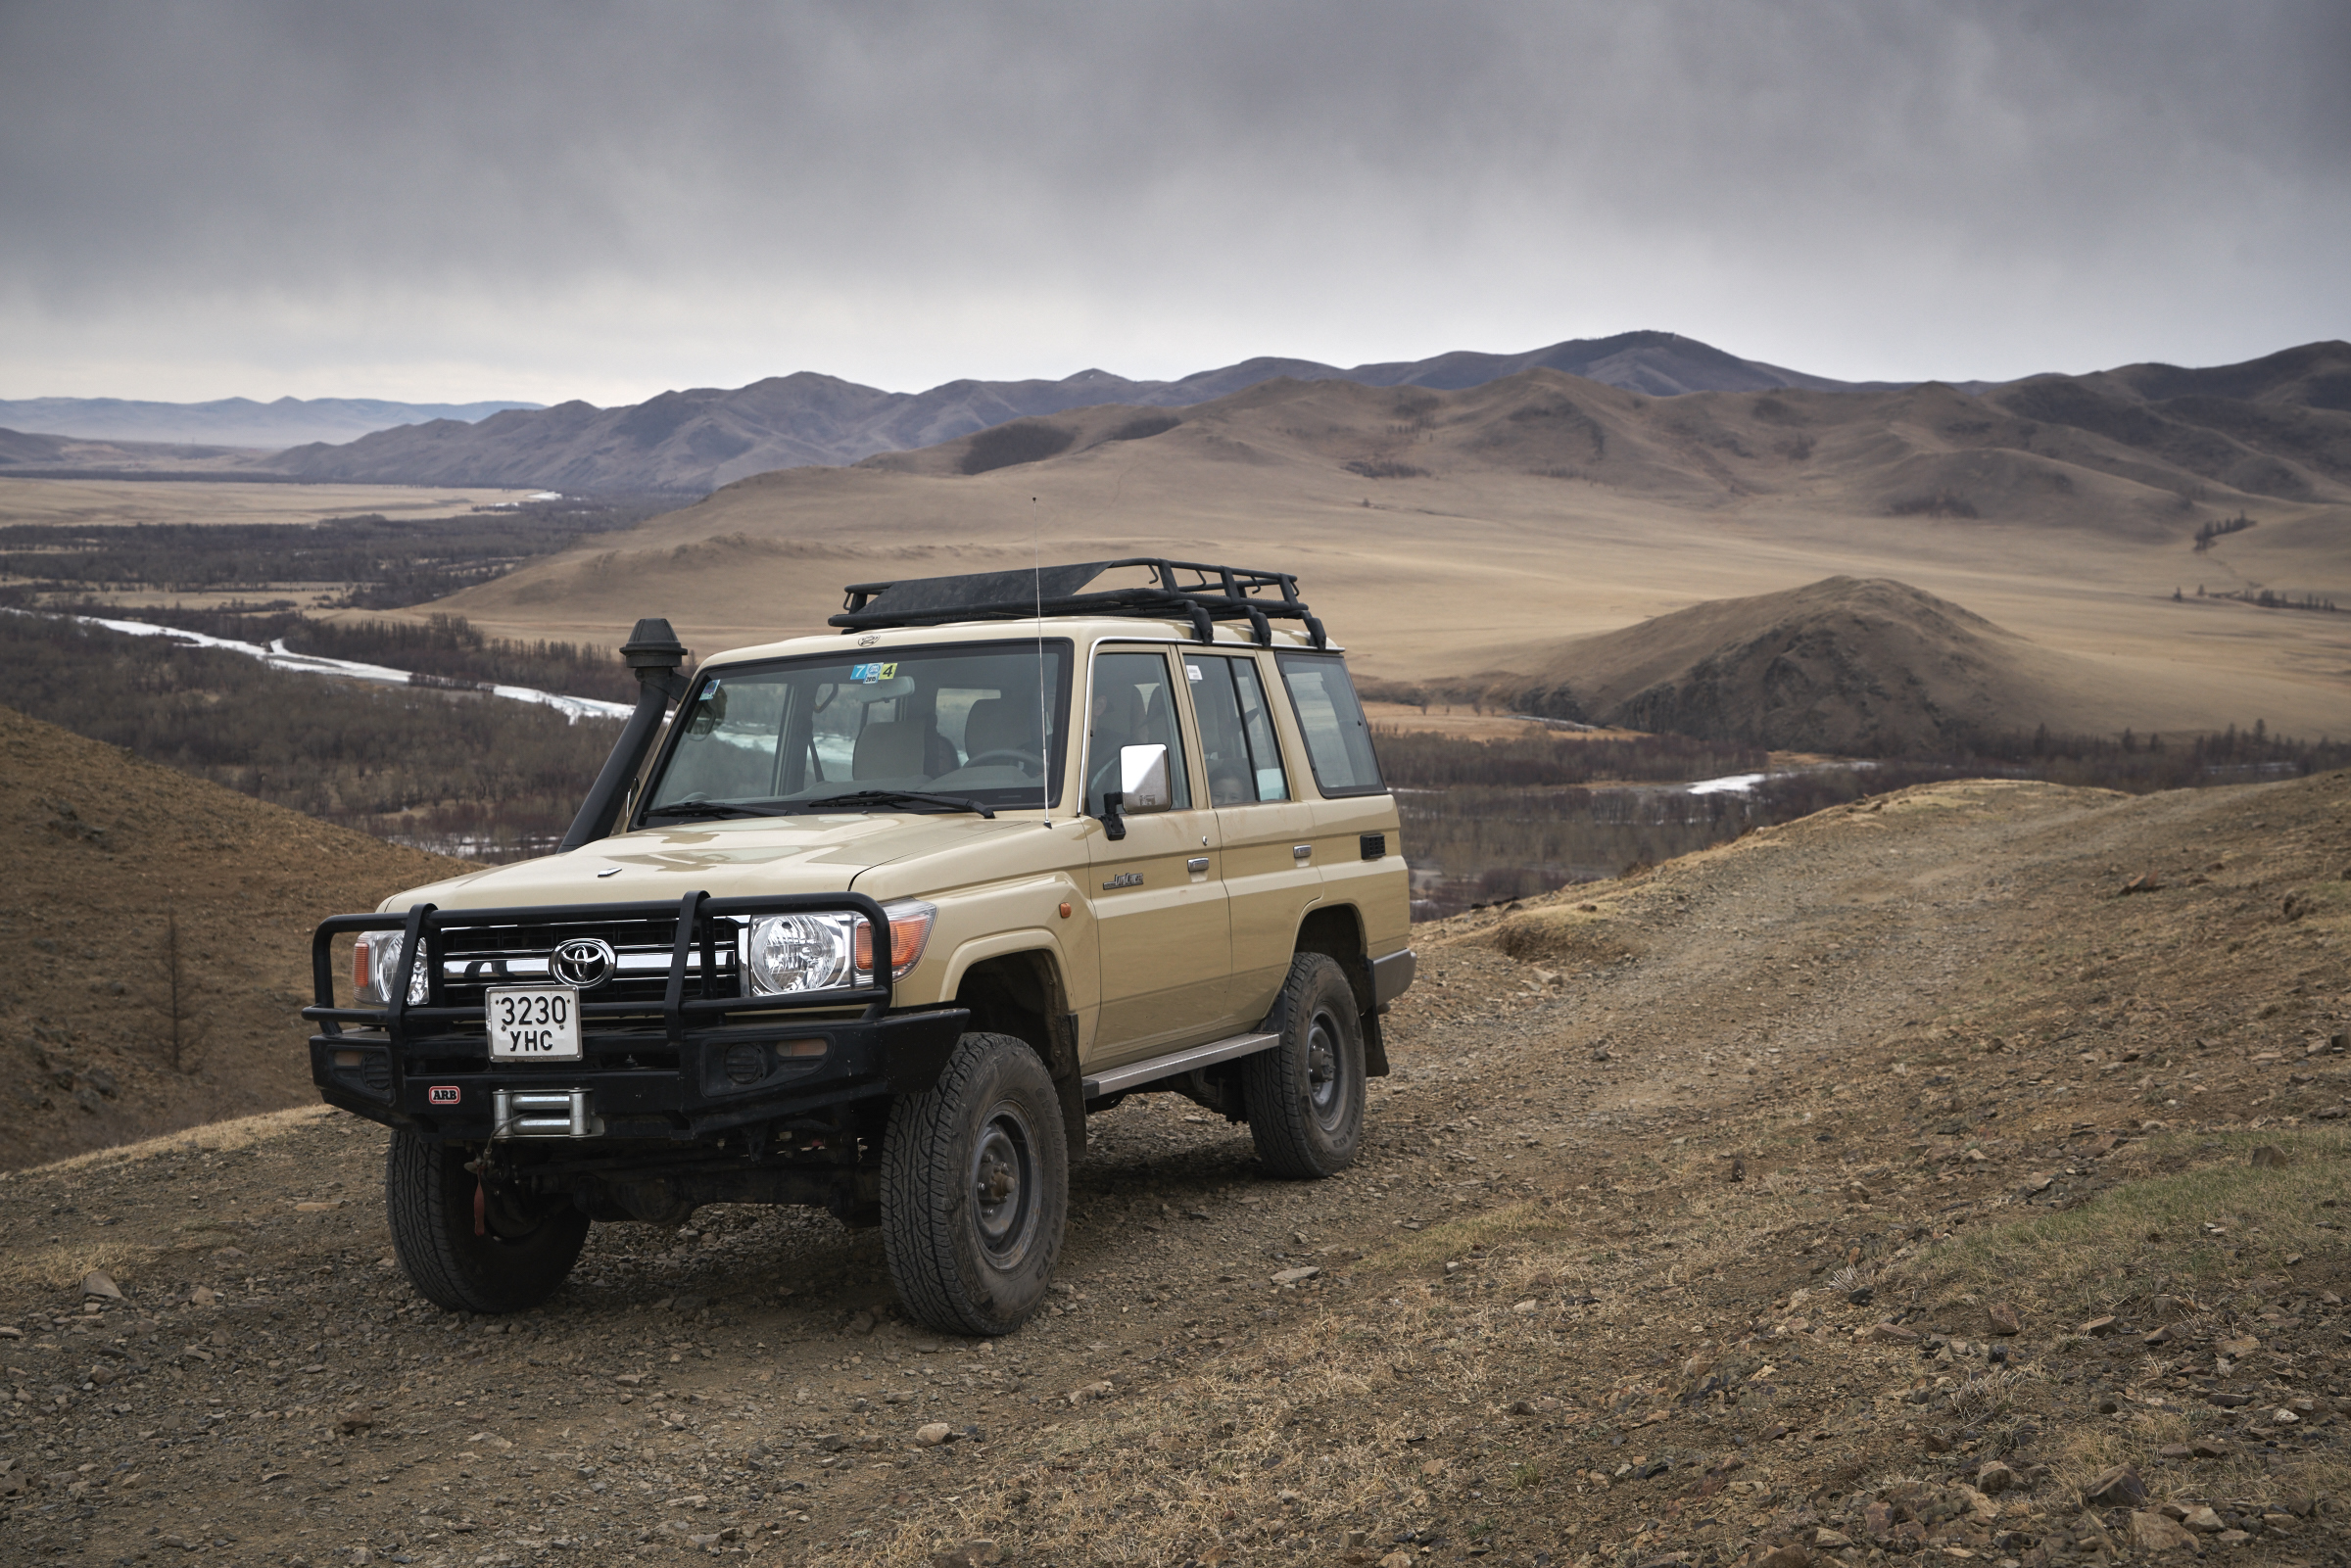 """TOYOTA LAND CRUISER 76 SERIES, MECHANIC, DIESEL, TOUGH OFF ROAD CAPABILITY.ALL OUR CARS ARE EQUIPPED WITH """"ARB""""BUMPER AND WINCHES. WE'LL PROVIDE TWO EXTRA TIRES. ROOF TENTS ARE OPTIONAL AND IT CAN BE INSTALLED IN EVERY VEHICLE.AND WE HAVE """"LUGGAGE STORAGE SERVICE"""" WITH FREE OF CHARGE."""